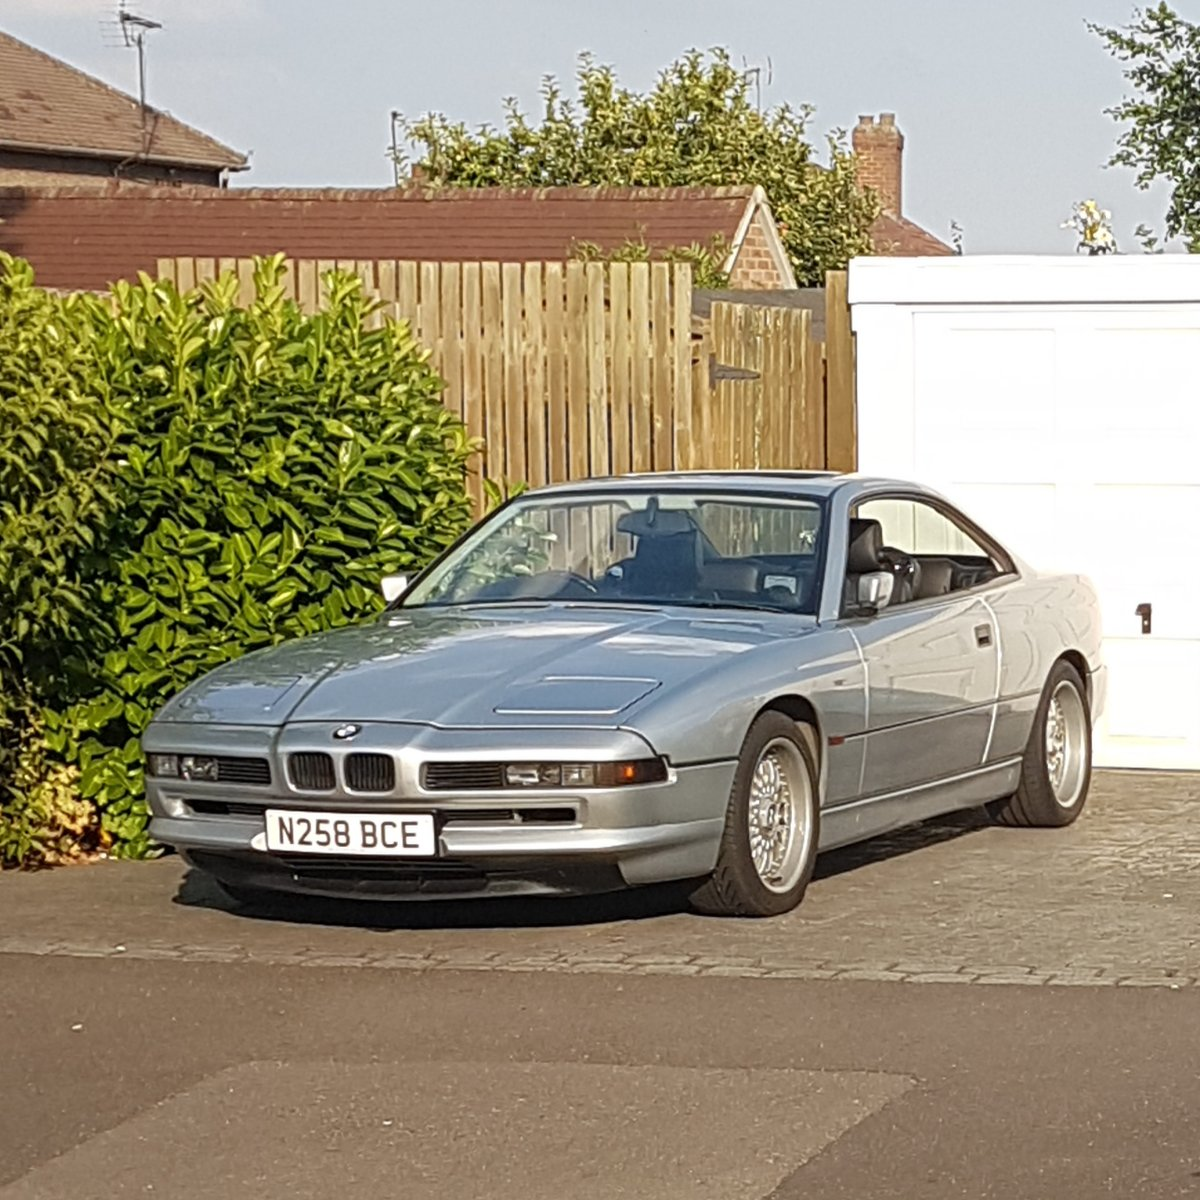 1995 1996 BMW 840Ci Auto 47k Low Miles 840 8 Series For Sale (picture 1 of 6)